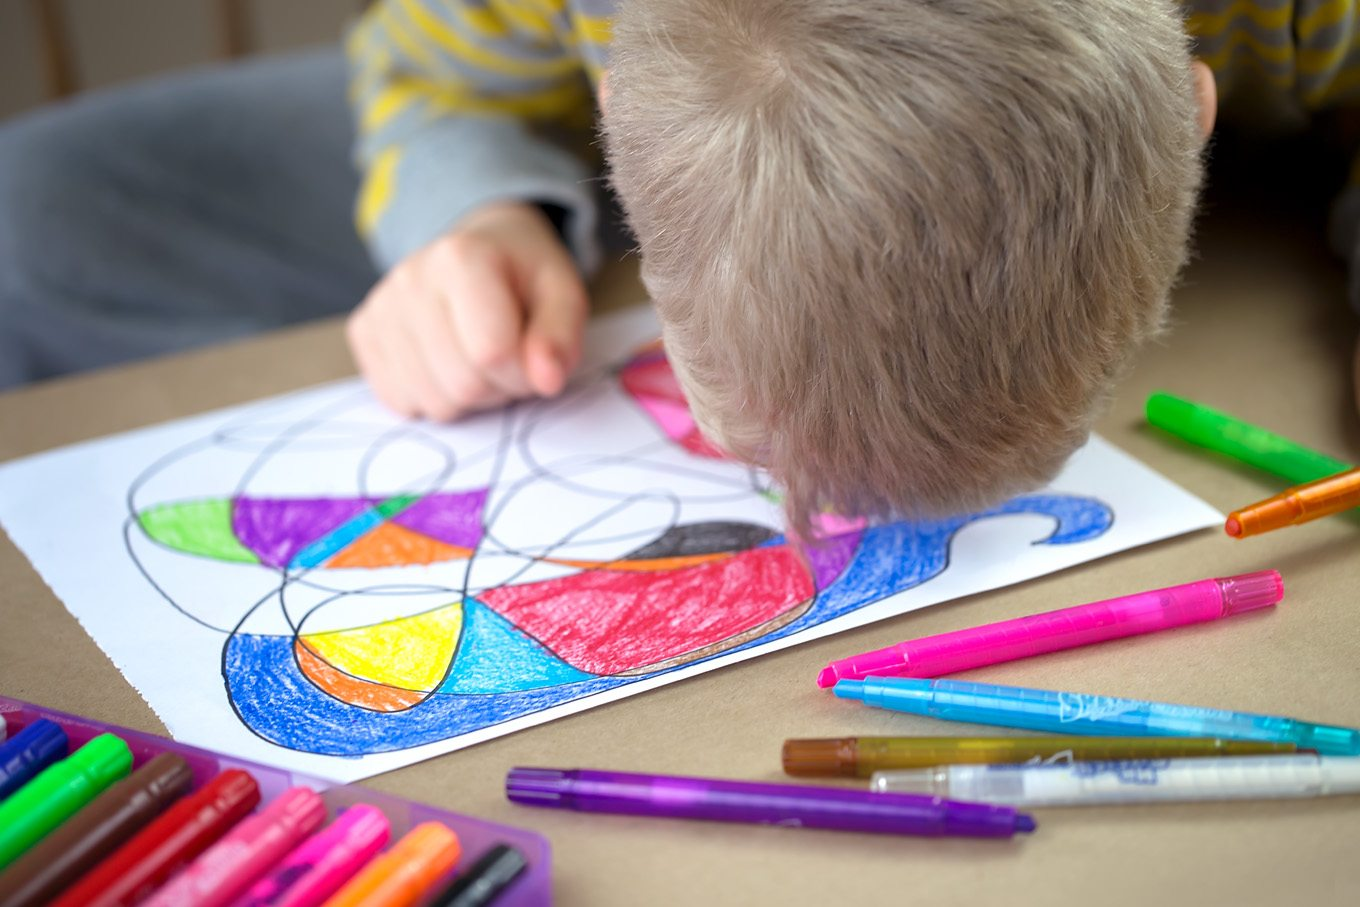 My kids' sketchbooks are full of Scribble Art! It's their go-to kind of drawing for relaxation, keeping themselves busy on road trips, and being creative.